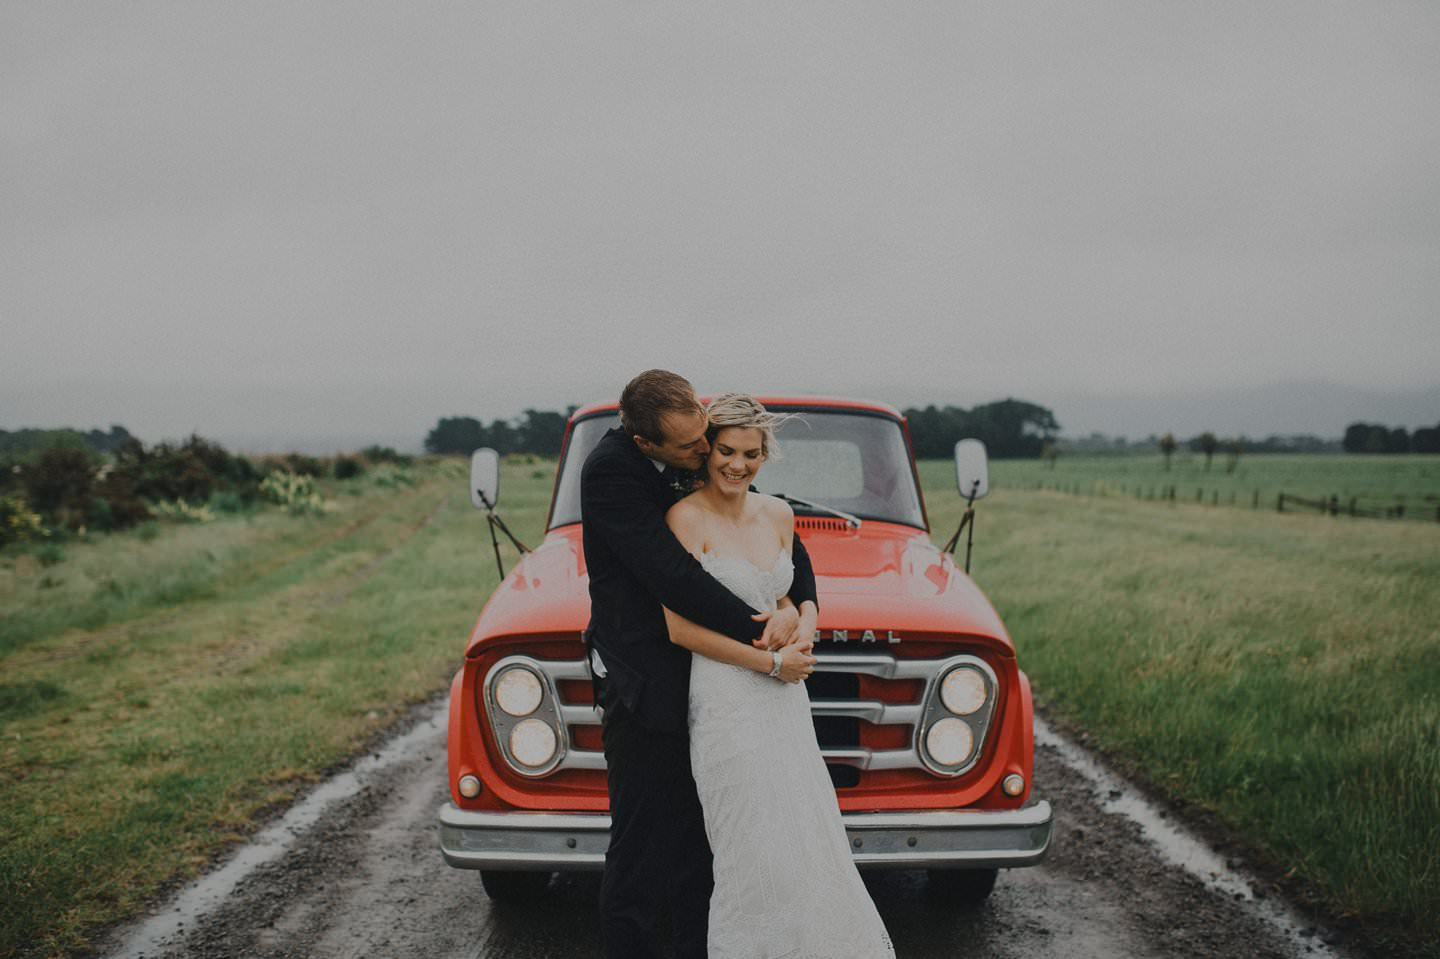 Dramatic wedding photo of bride and groom in the rain